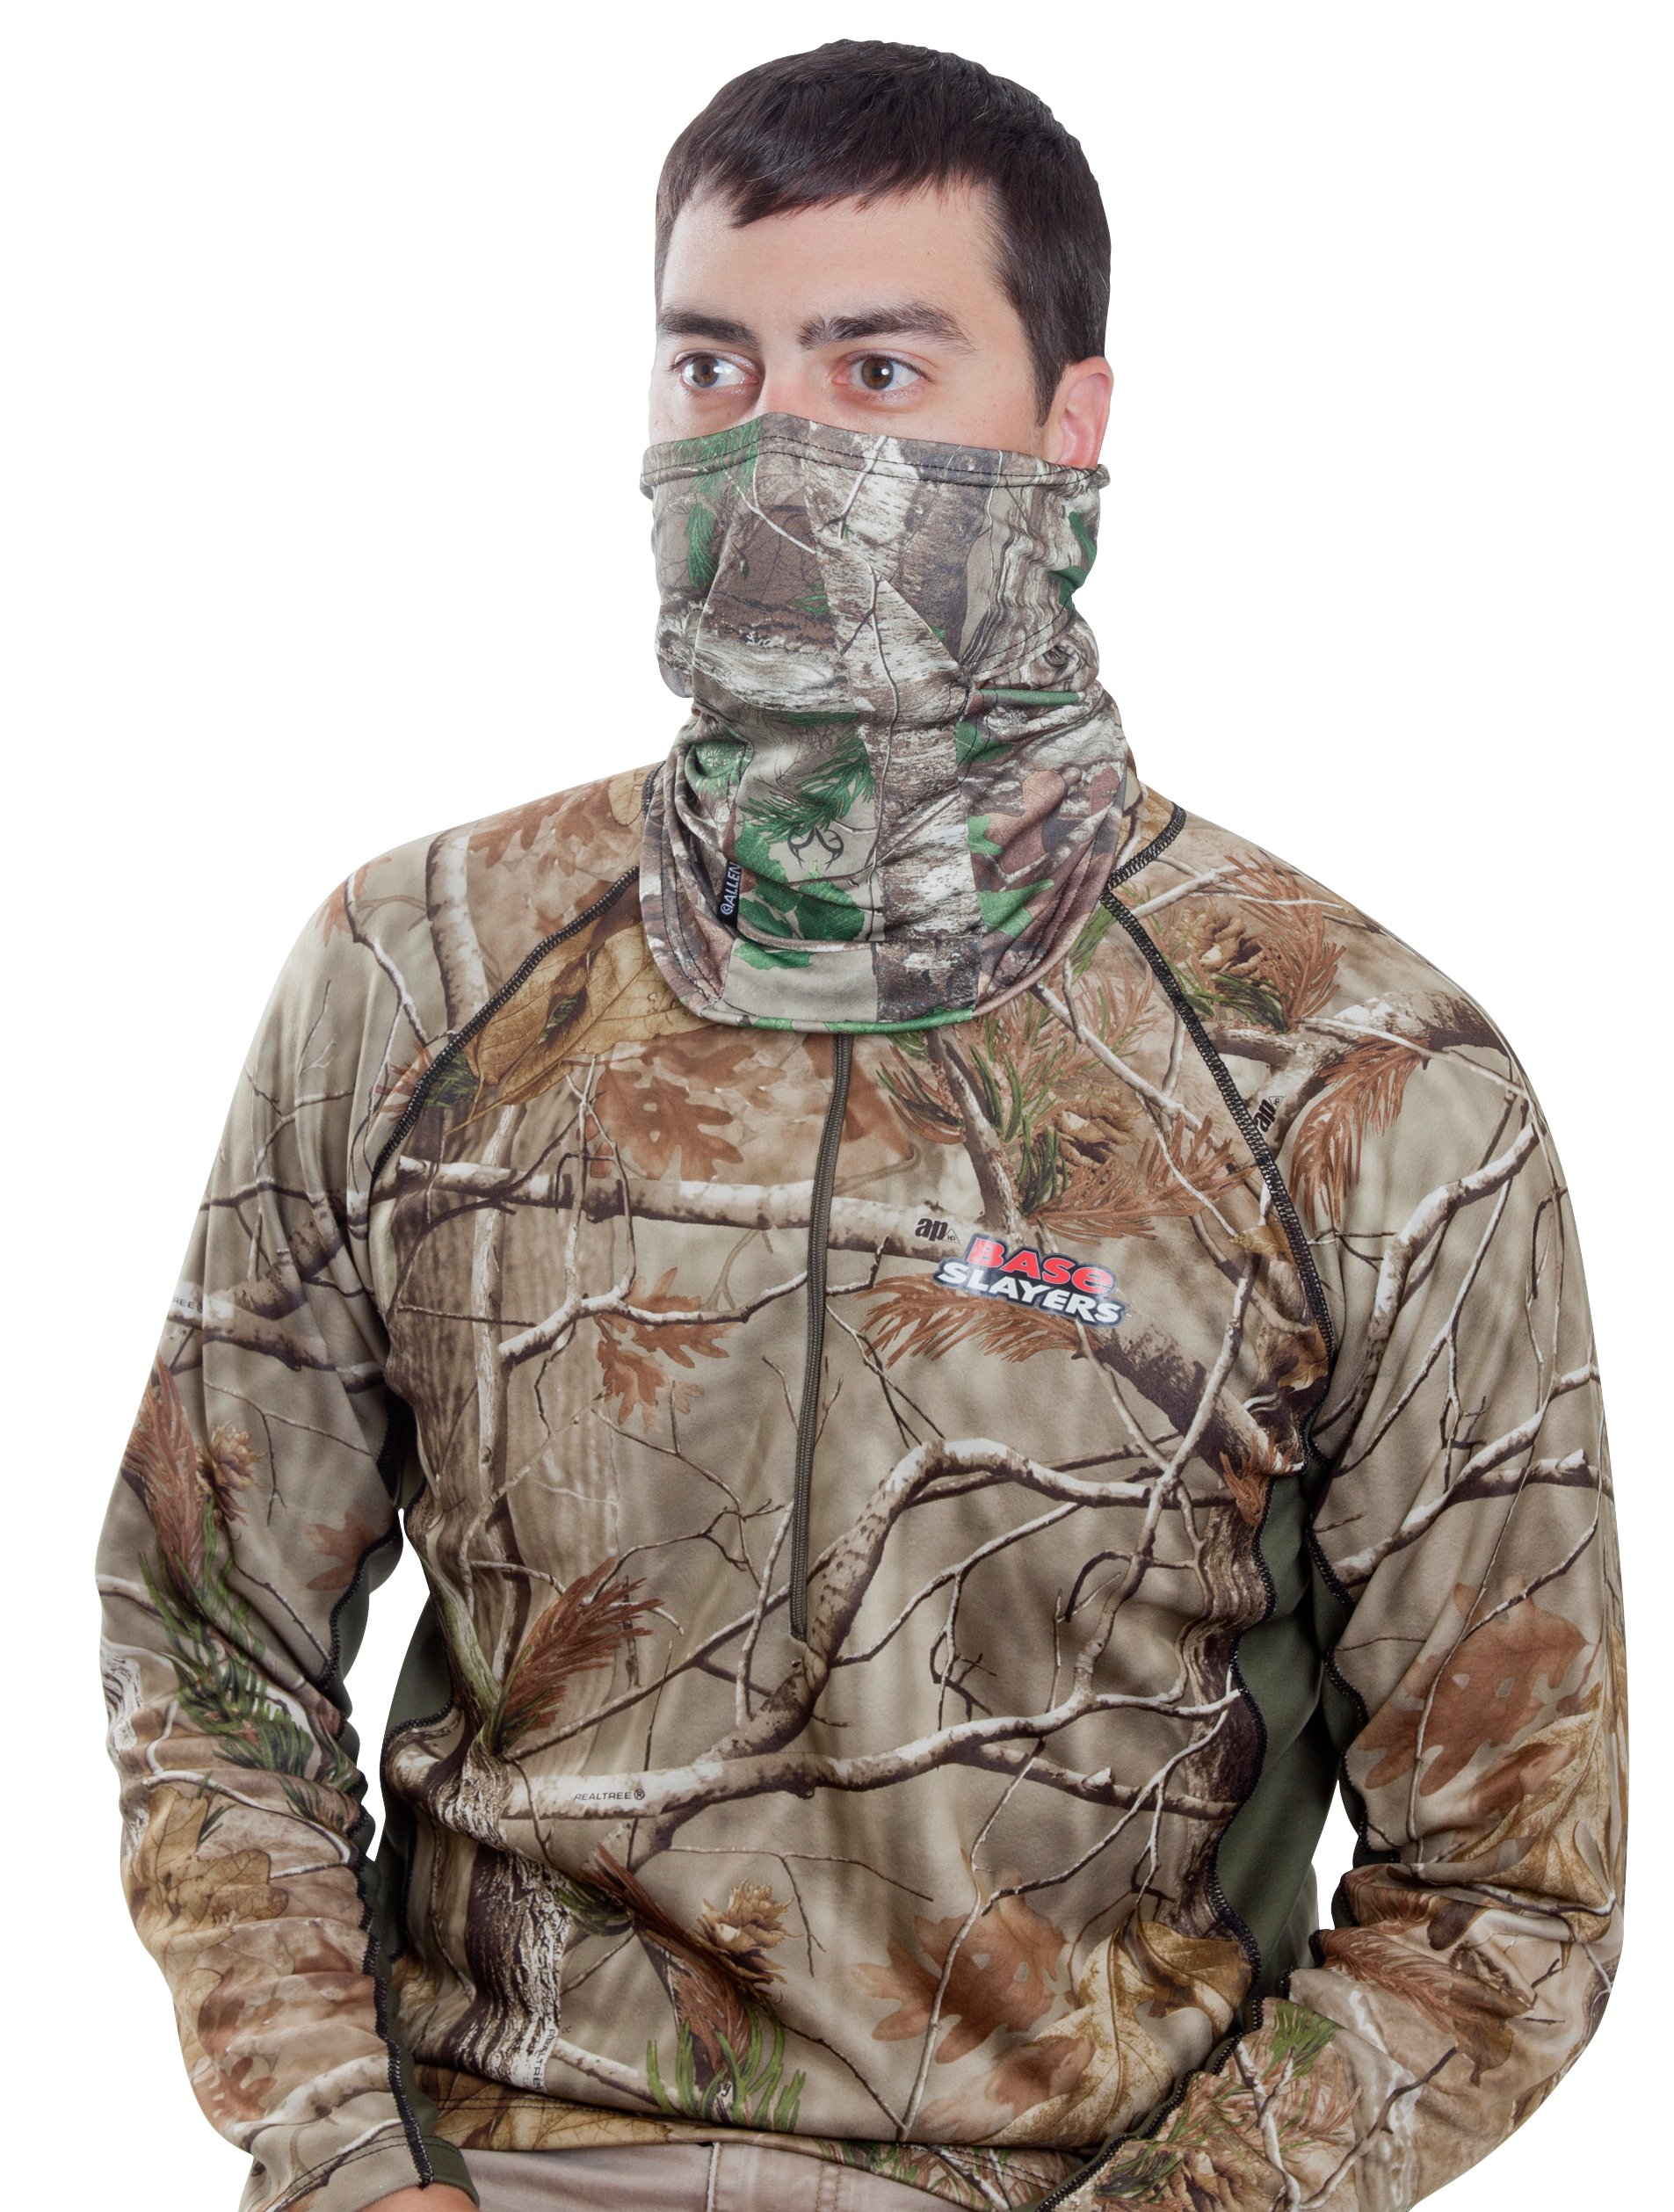 Allen 17484 Balaclava Face Mask Adjustable Face  One Size Fits Most Realtree Xtra Green